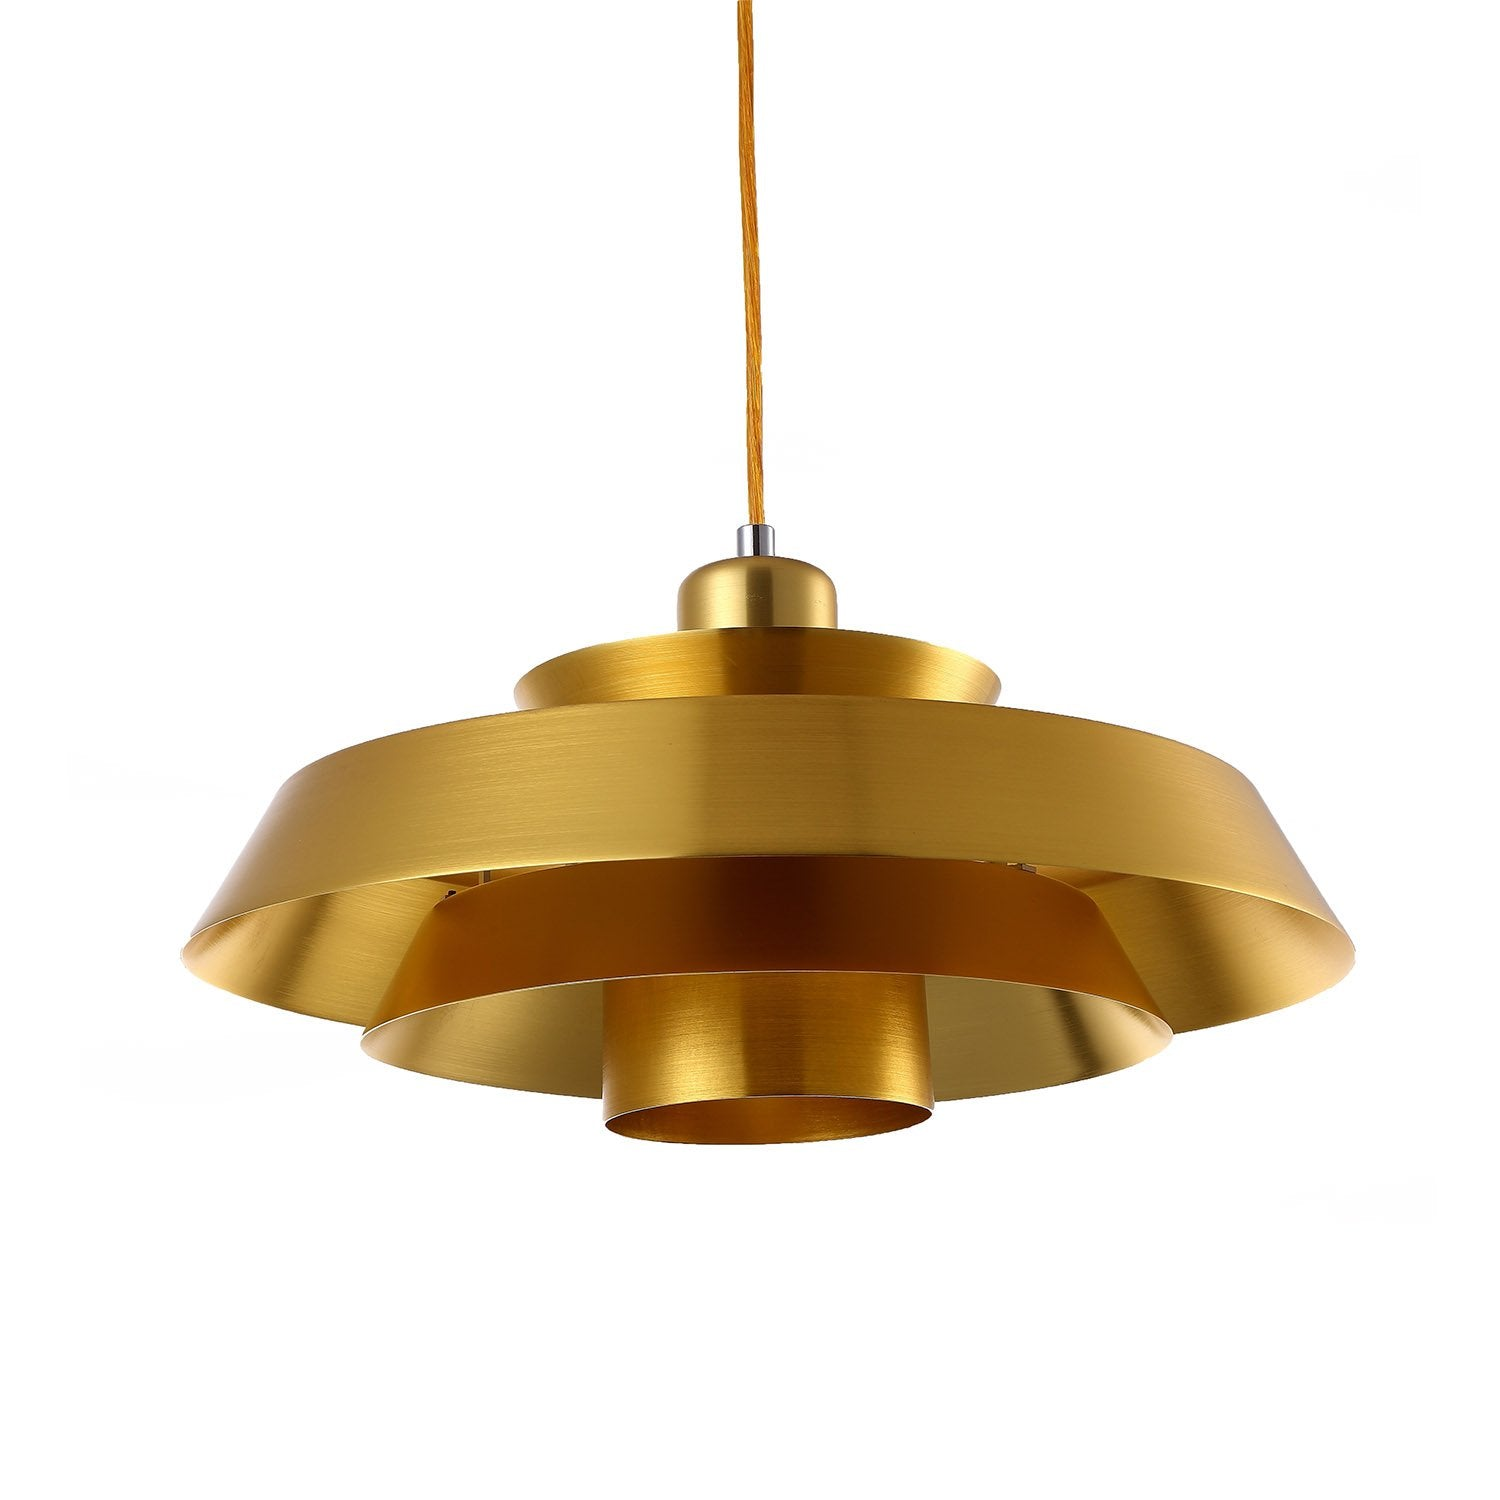 [LN6351BRASS] Nova Pendant Light SALE